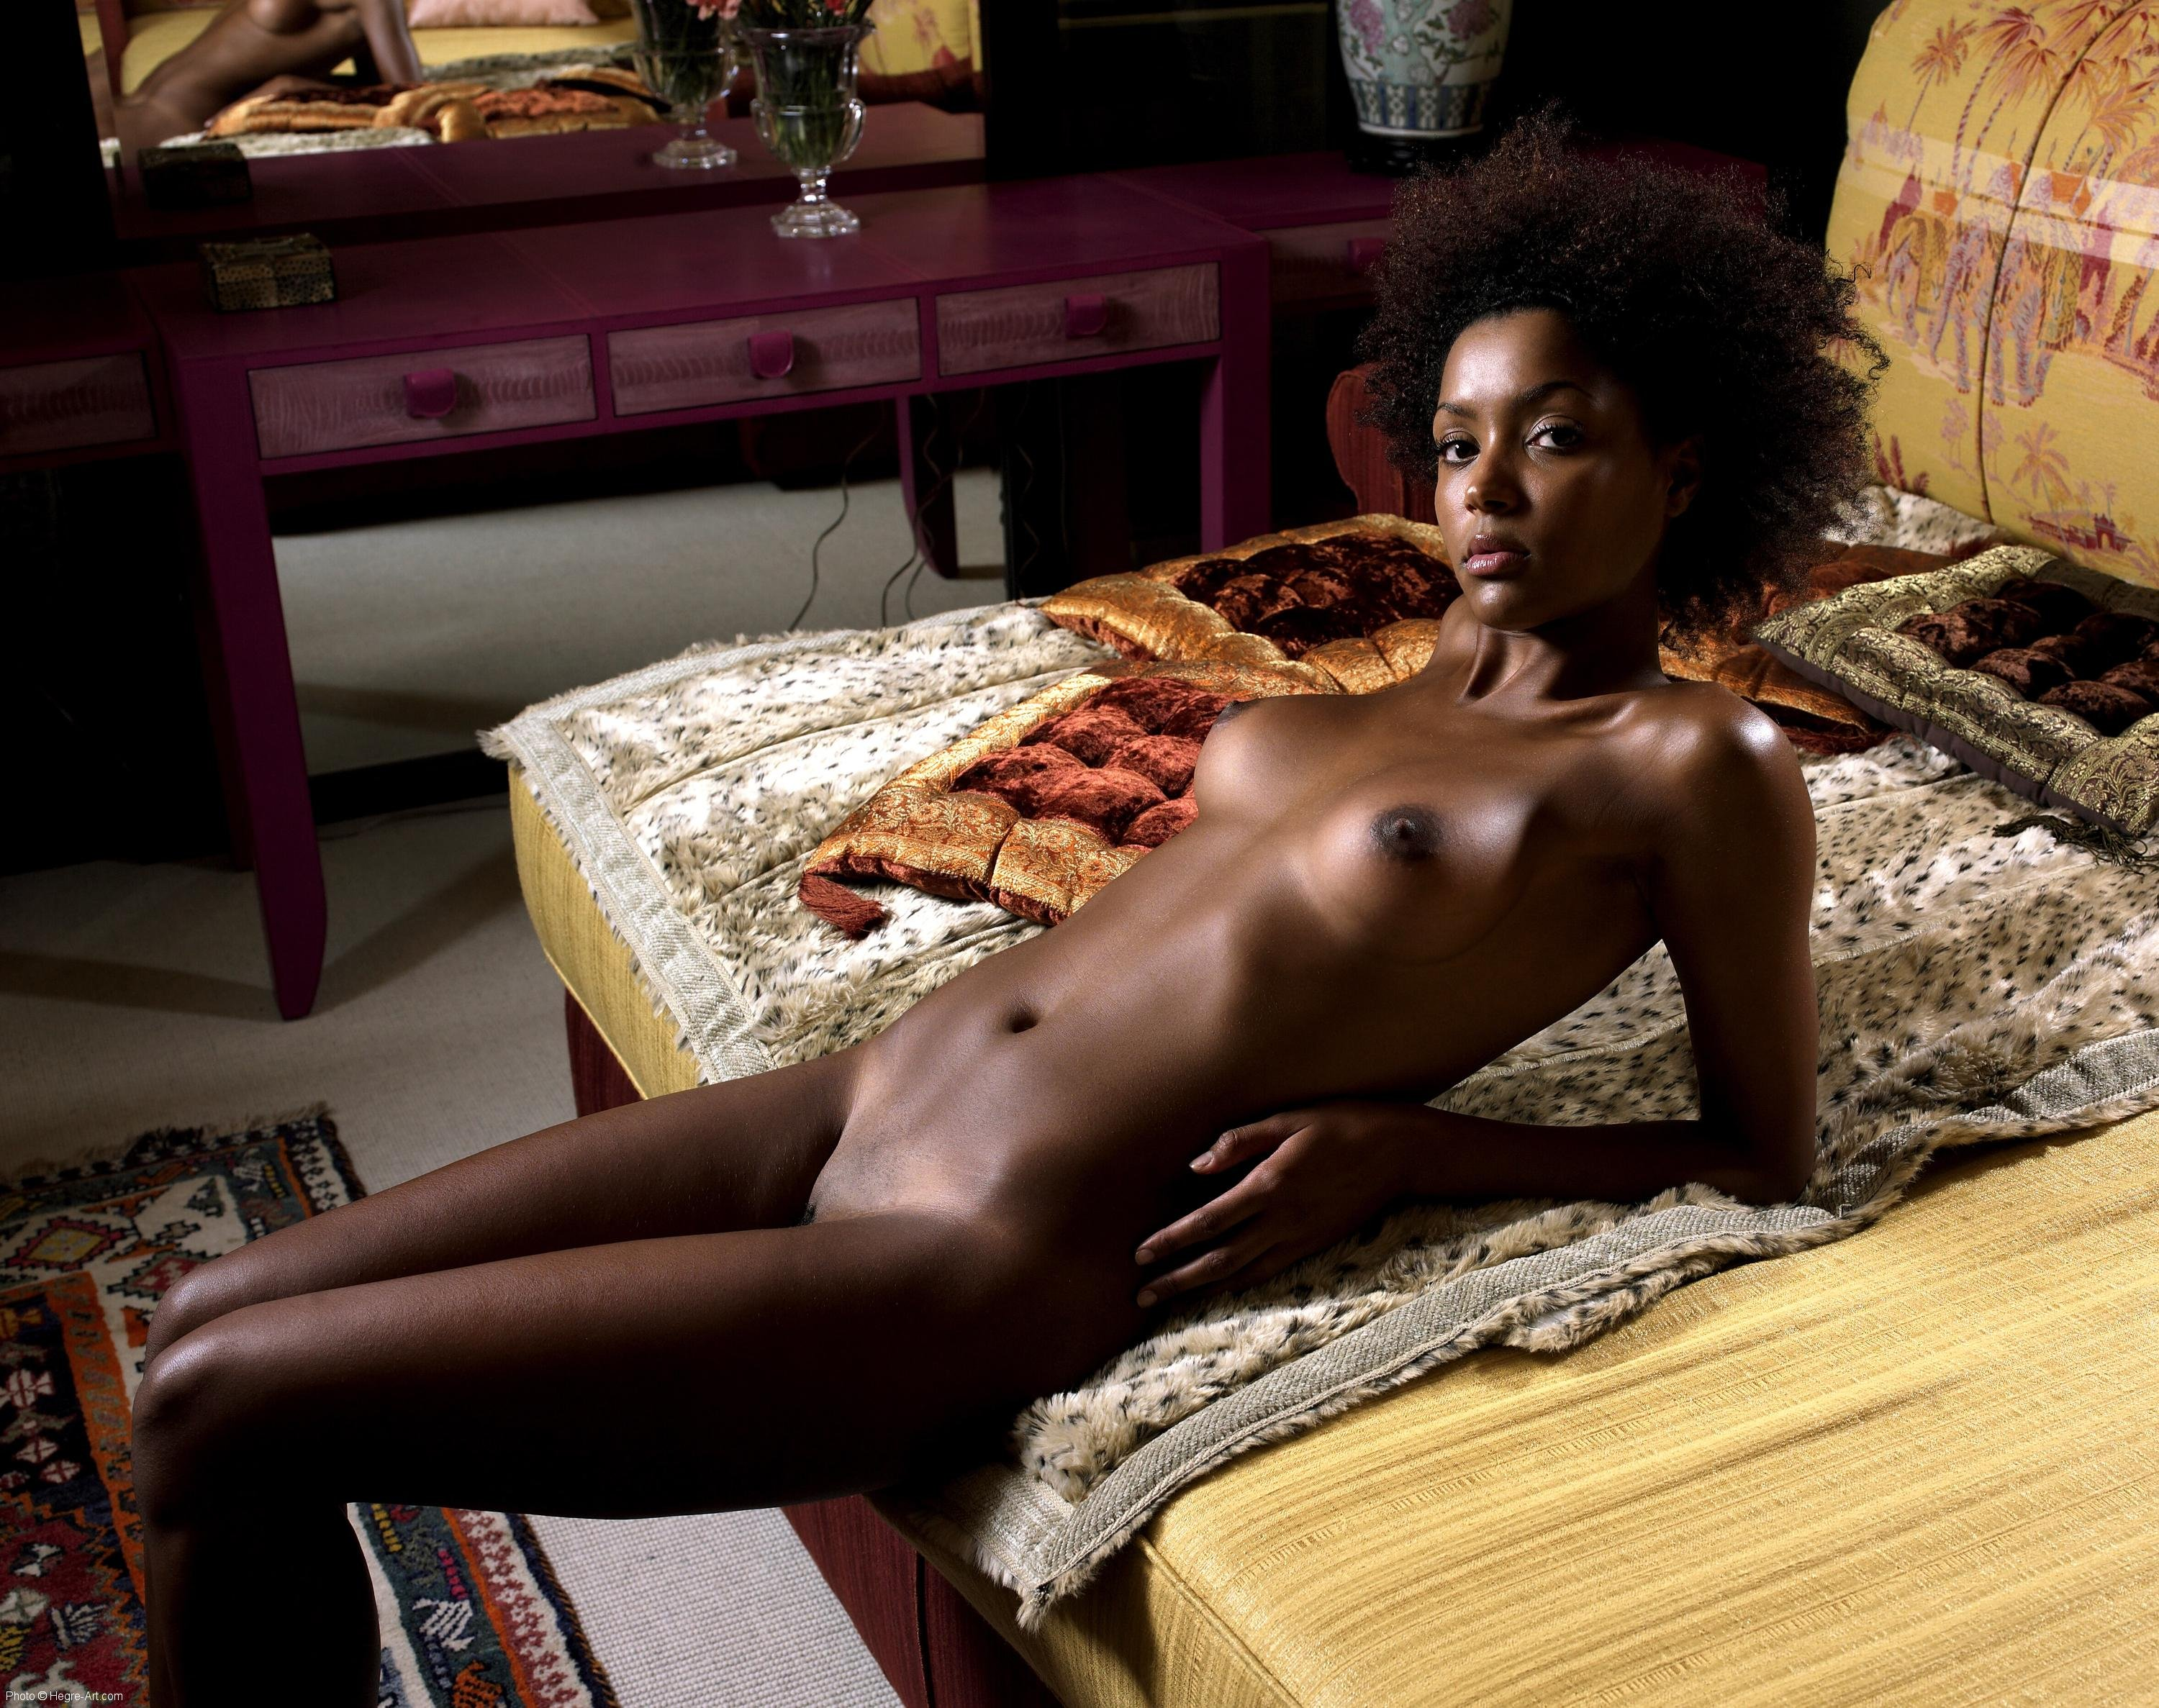 Naked pictures olive skinned female #13